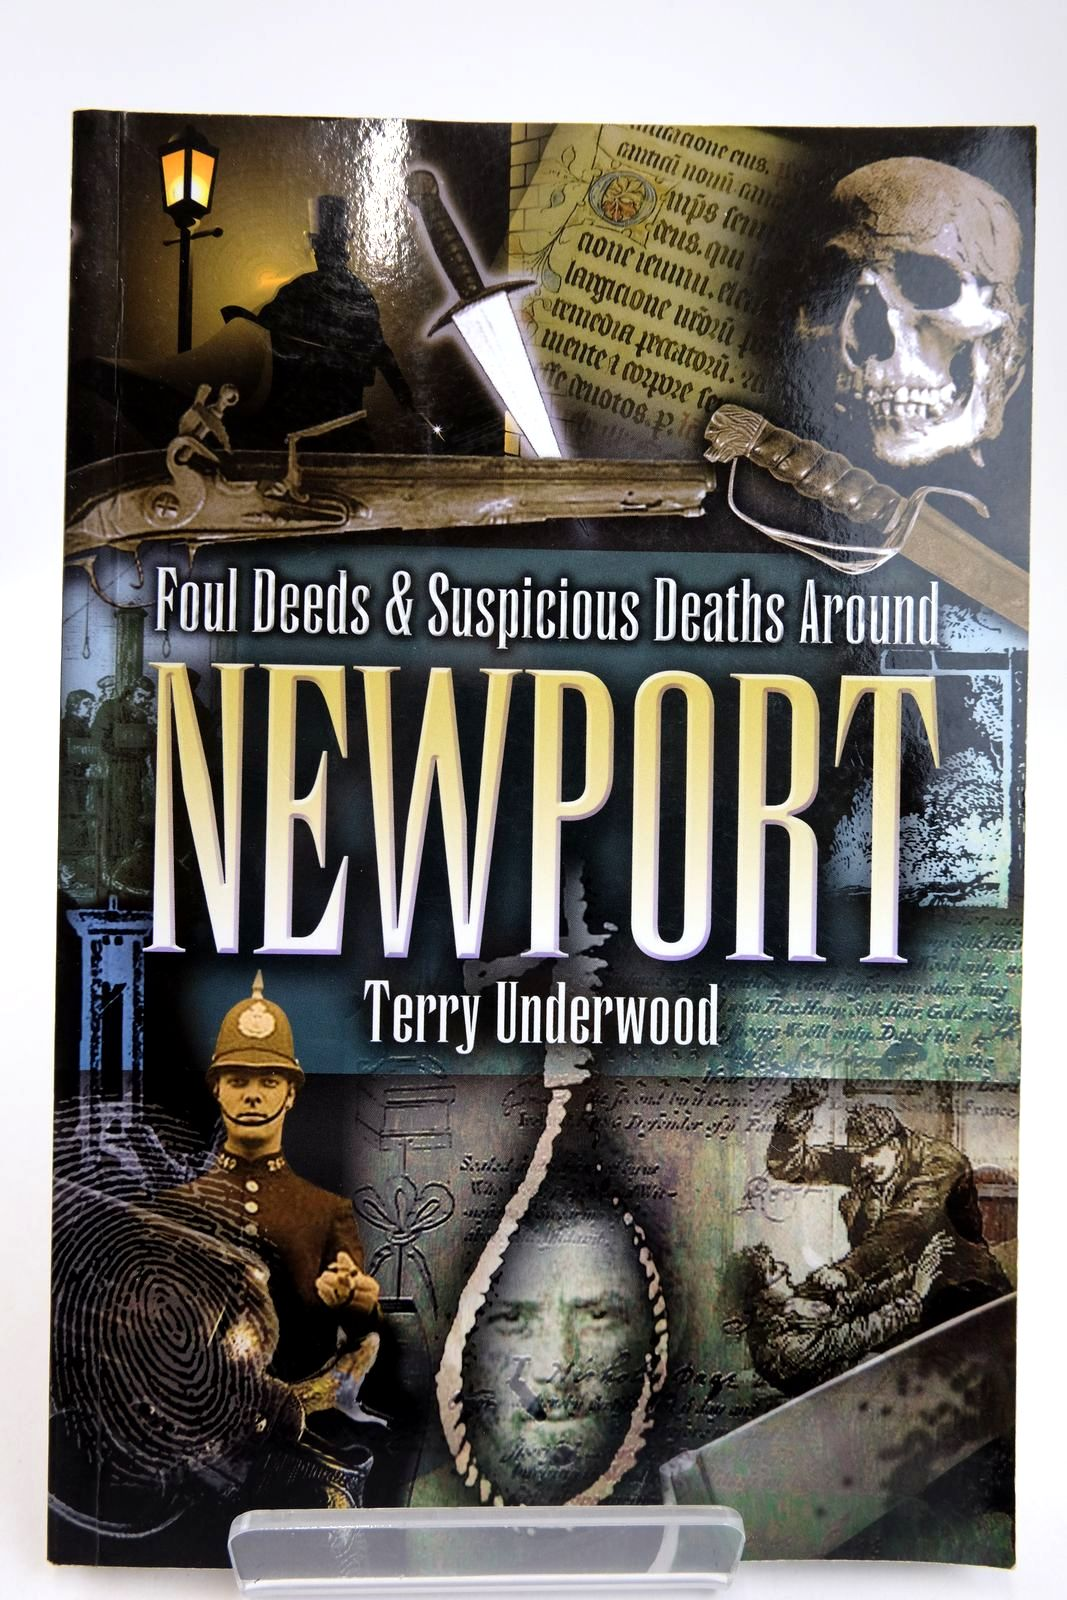 Photo of FOUL DEEDS & SUSPICIOUS DEATHS AROUND NEWPORT written by Underwood, Terry published by Wharncliffe Books (STOCK CODE: 2132887)  for sale by Stella & Rose's Books